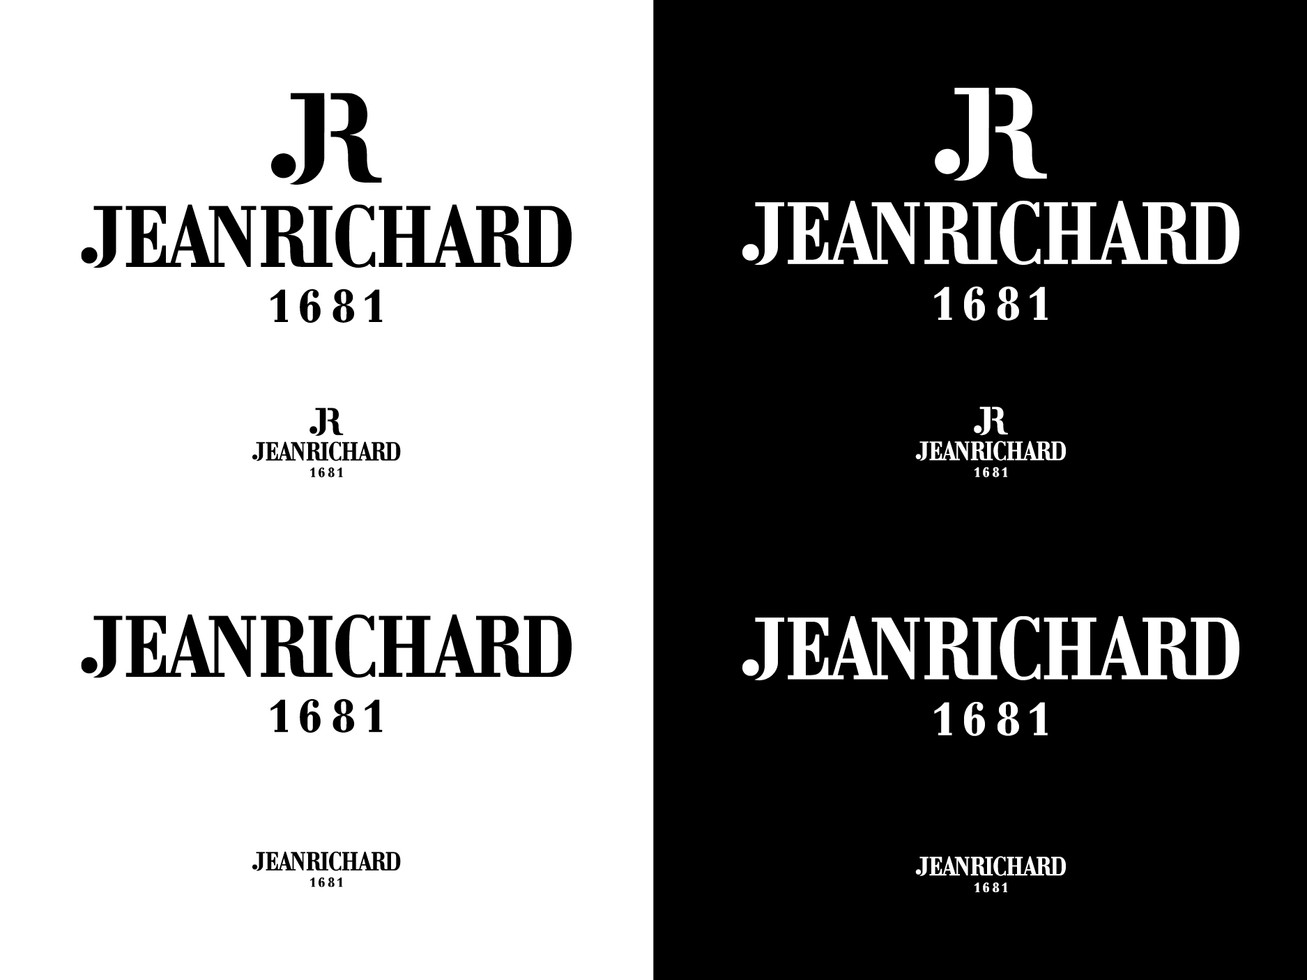 Logotype and base line with and with and without sign